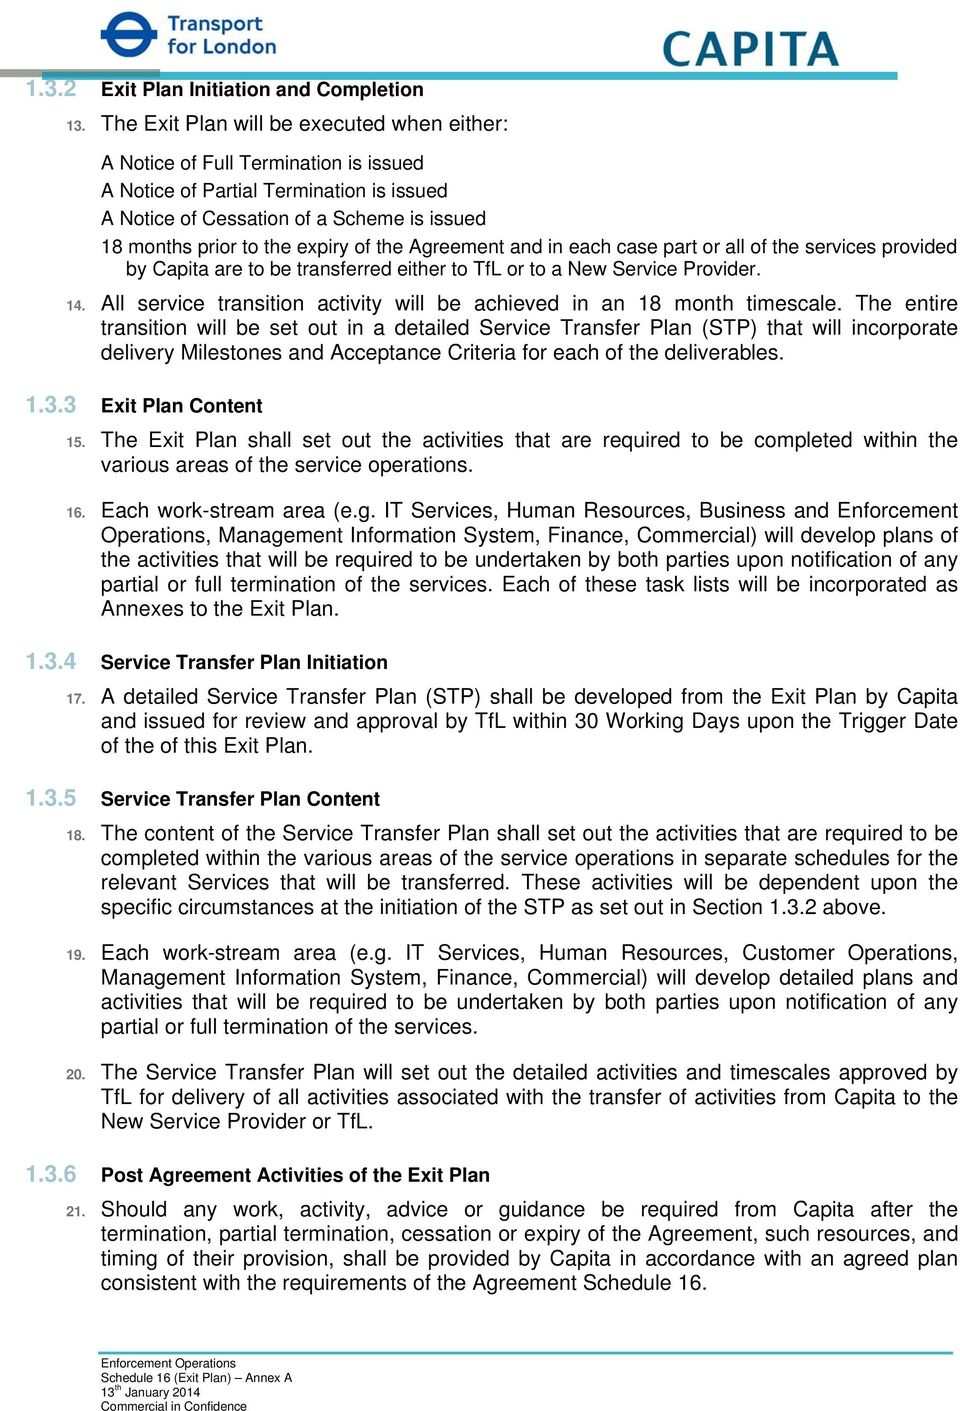 of the Agreement and in each case part or all of the services provided by Capita are to be transferred either to TfL or to a New Service Provider. 14.